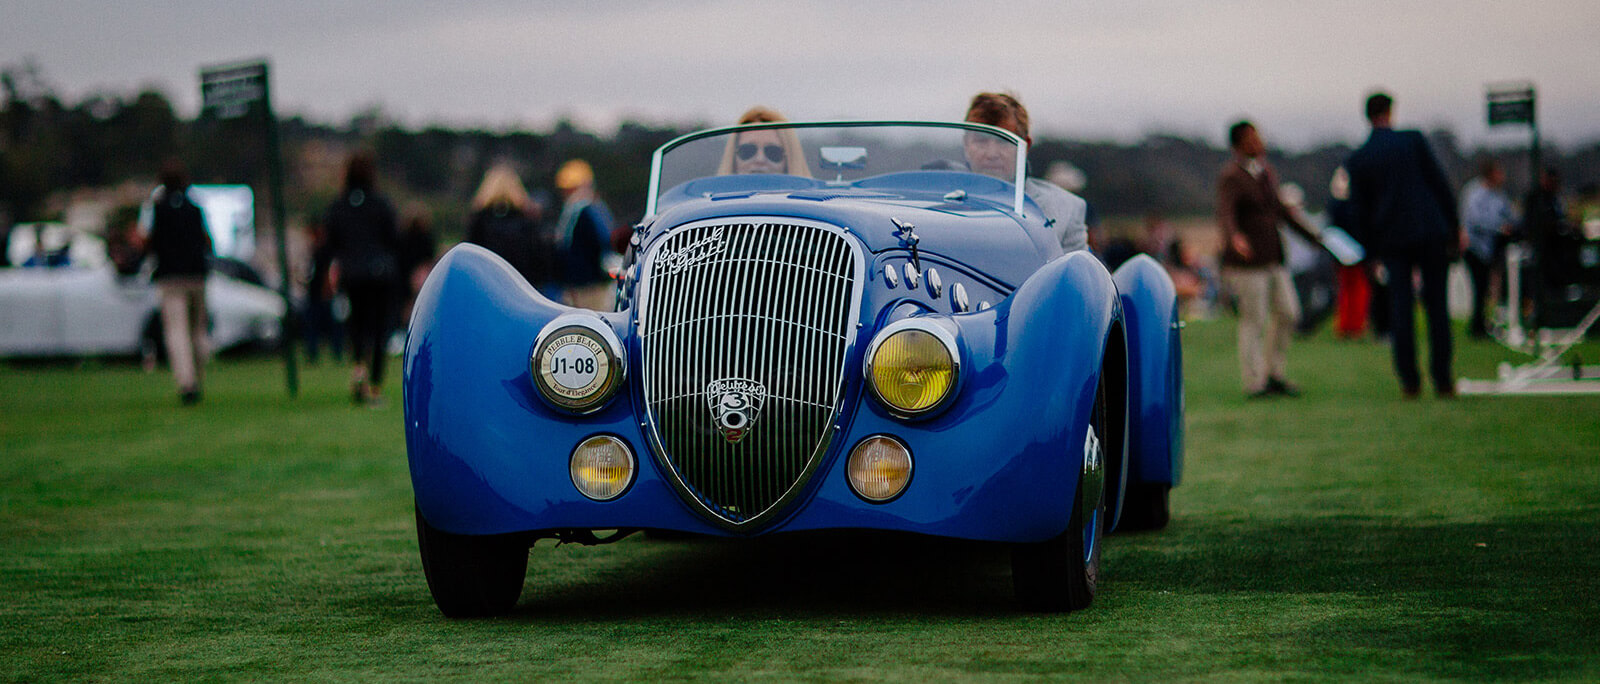 Blue car driving on the Show Field at the Pebble Beach Concours d'Elegance 2019